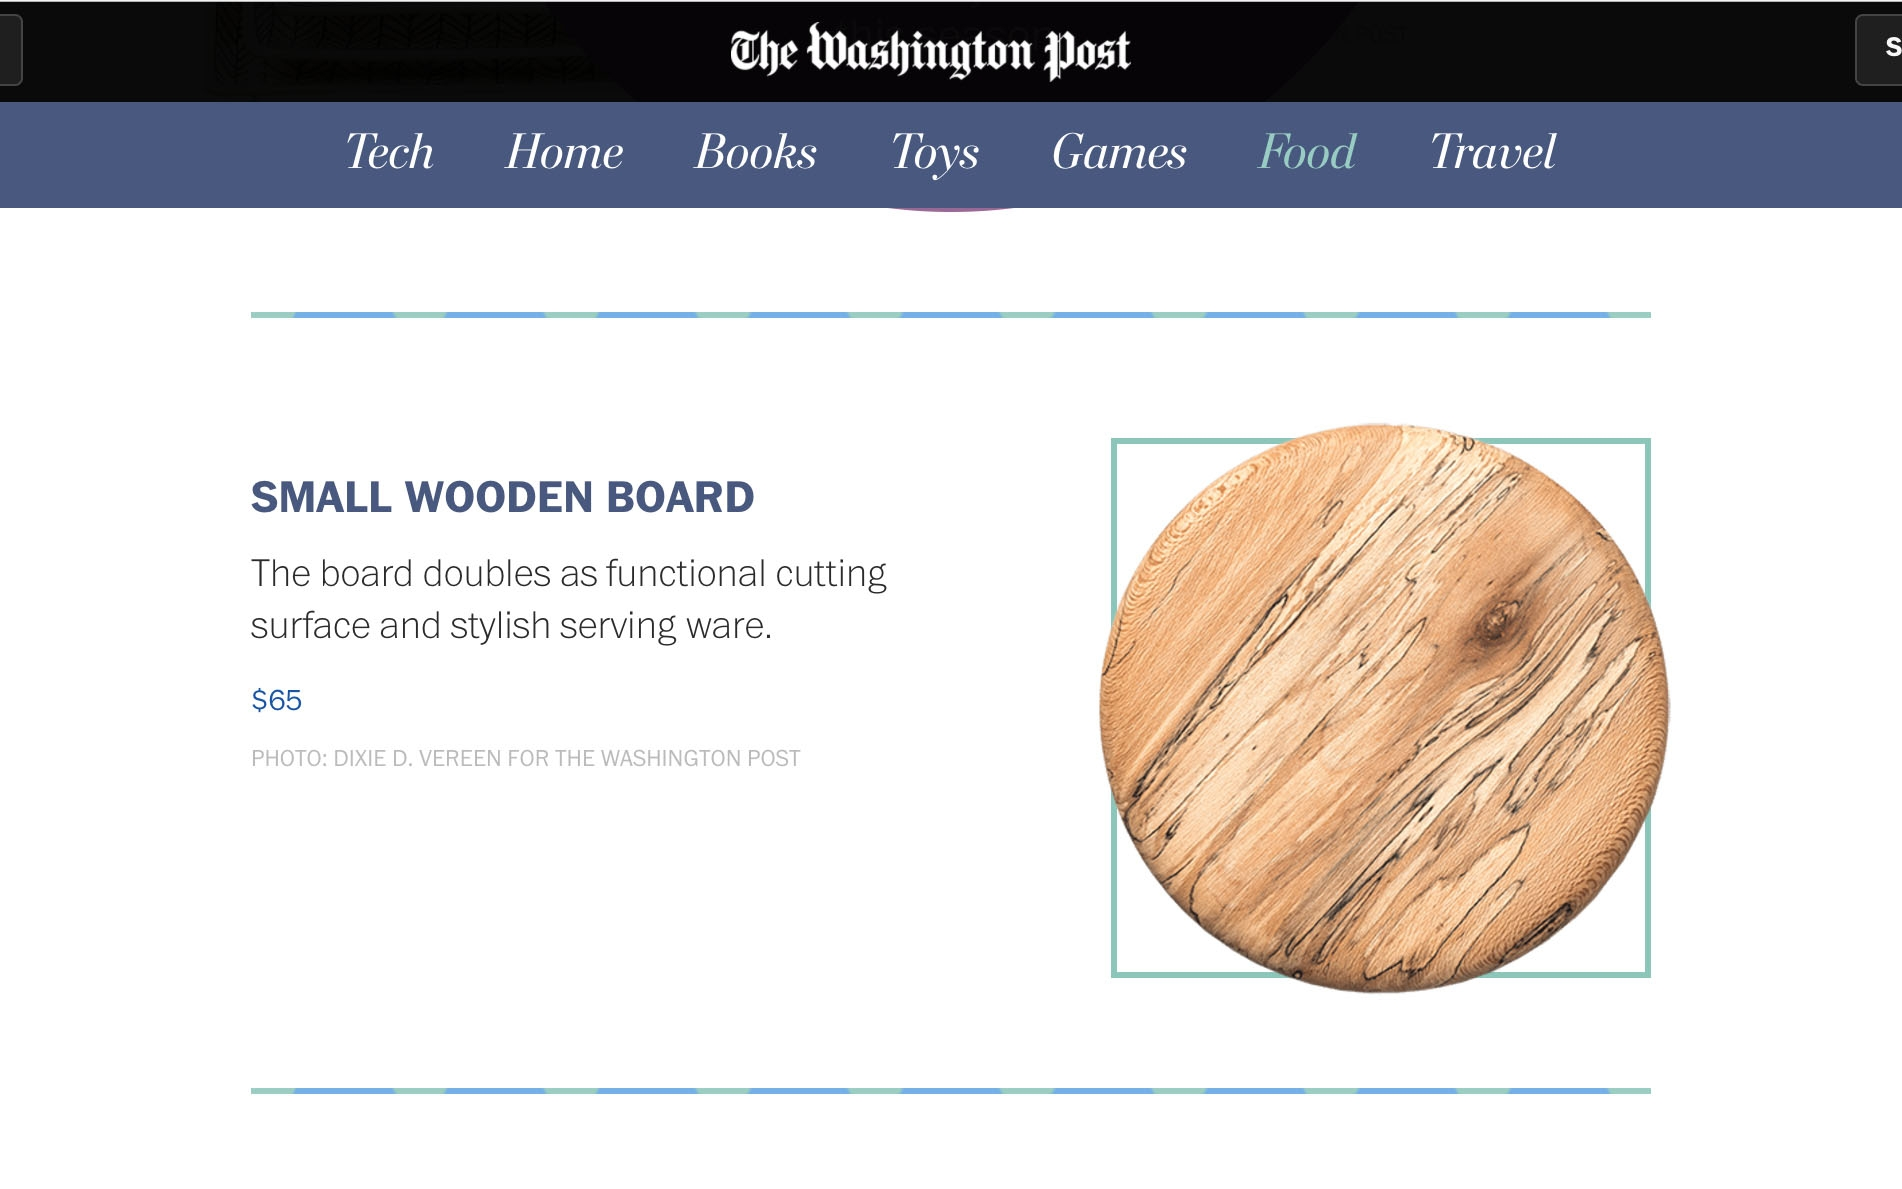 washington post gift guide feature.jpg